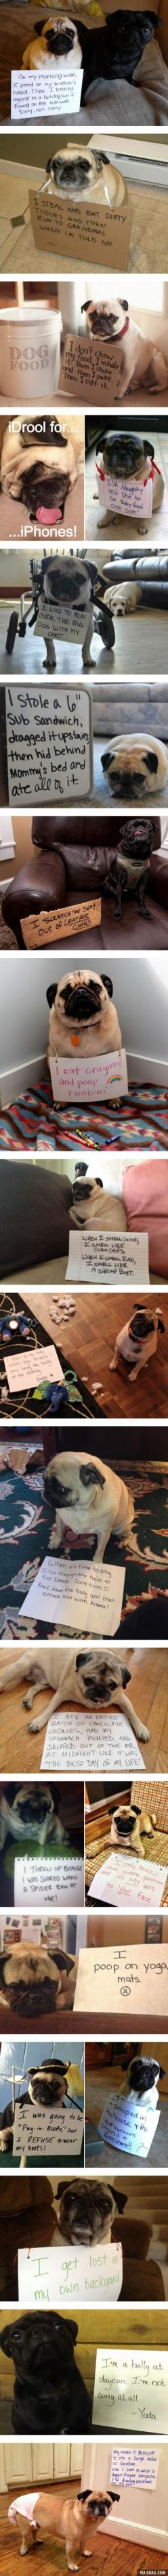 "Pug Shaming... Some of these are hilarious... The ""I only know one position"" thing must be a pug trait.: Pug Trait, Pug Shaming, Dog Shaming, Pug Life, Pugshaming, Animal Shaming, Funny Animal"